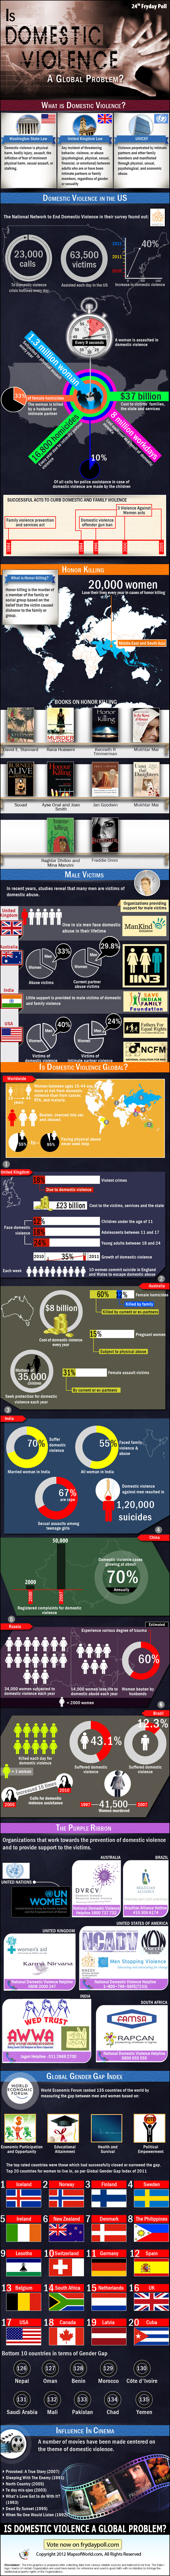 Domestic Violence Facts and Statistics